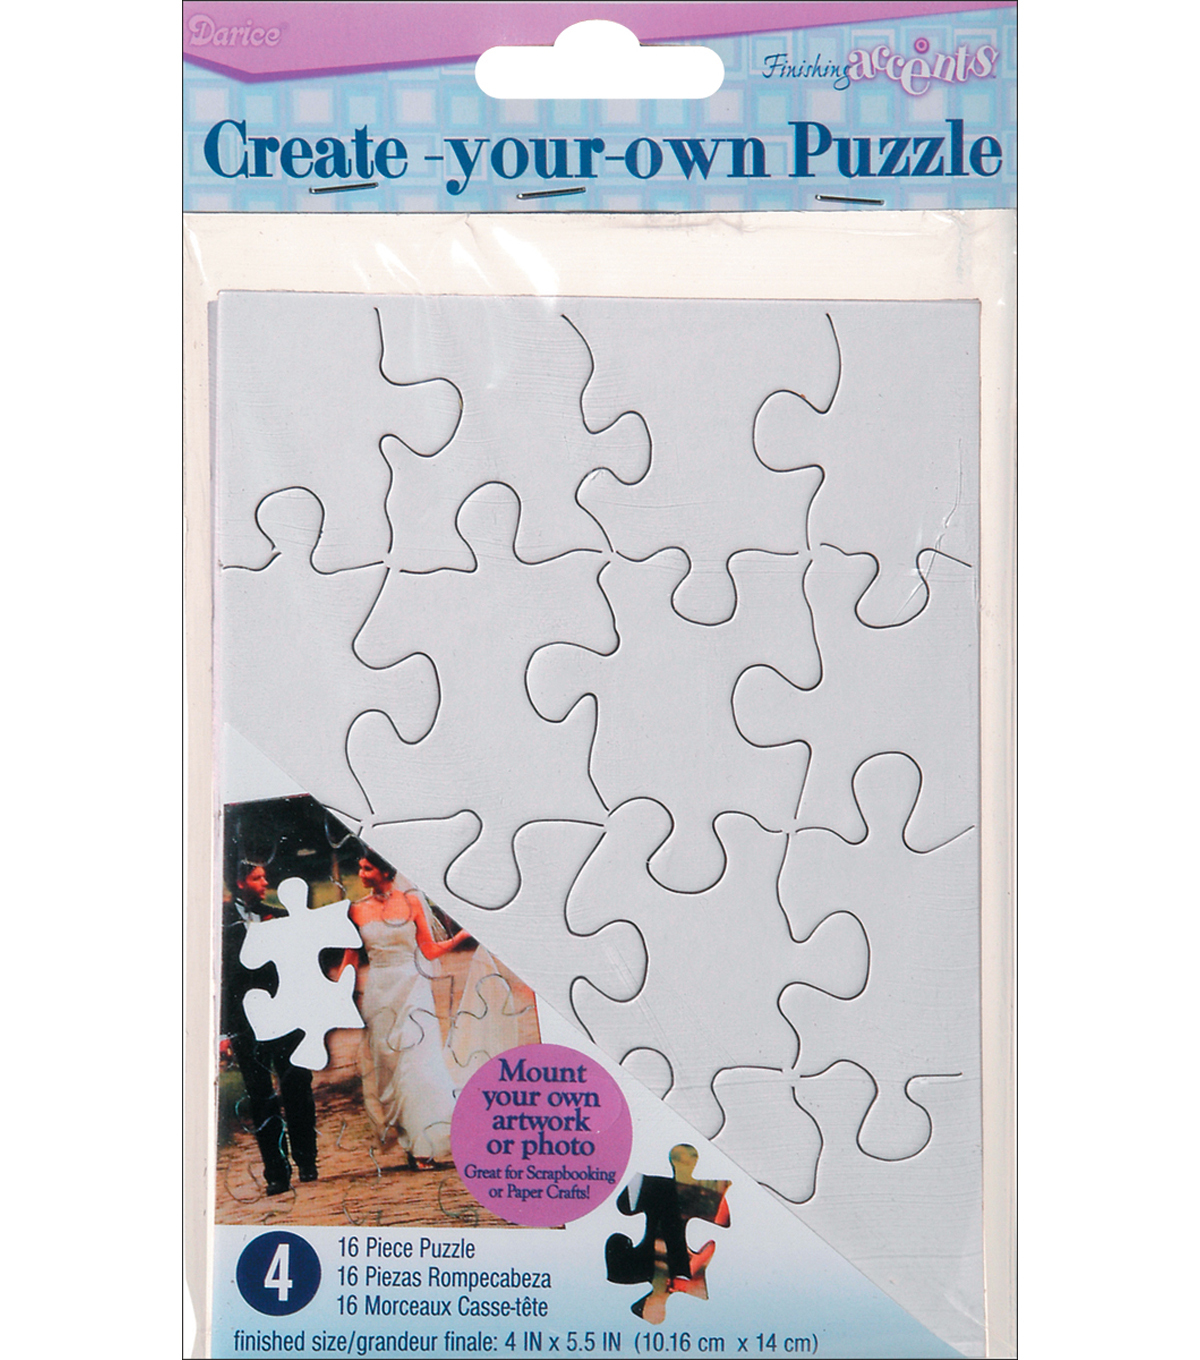 16 Piece Blank Puzzle - Color Your Own Puzzle | JOANN